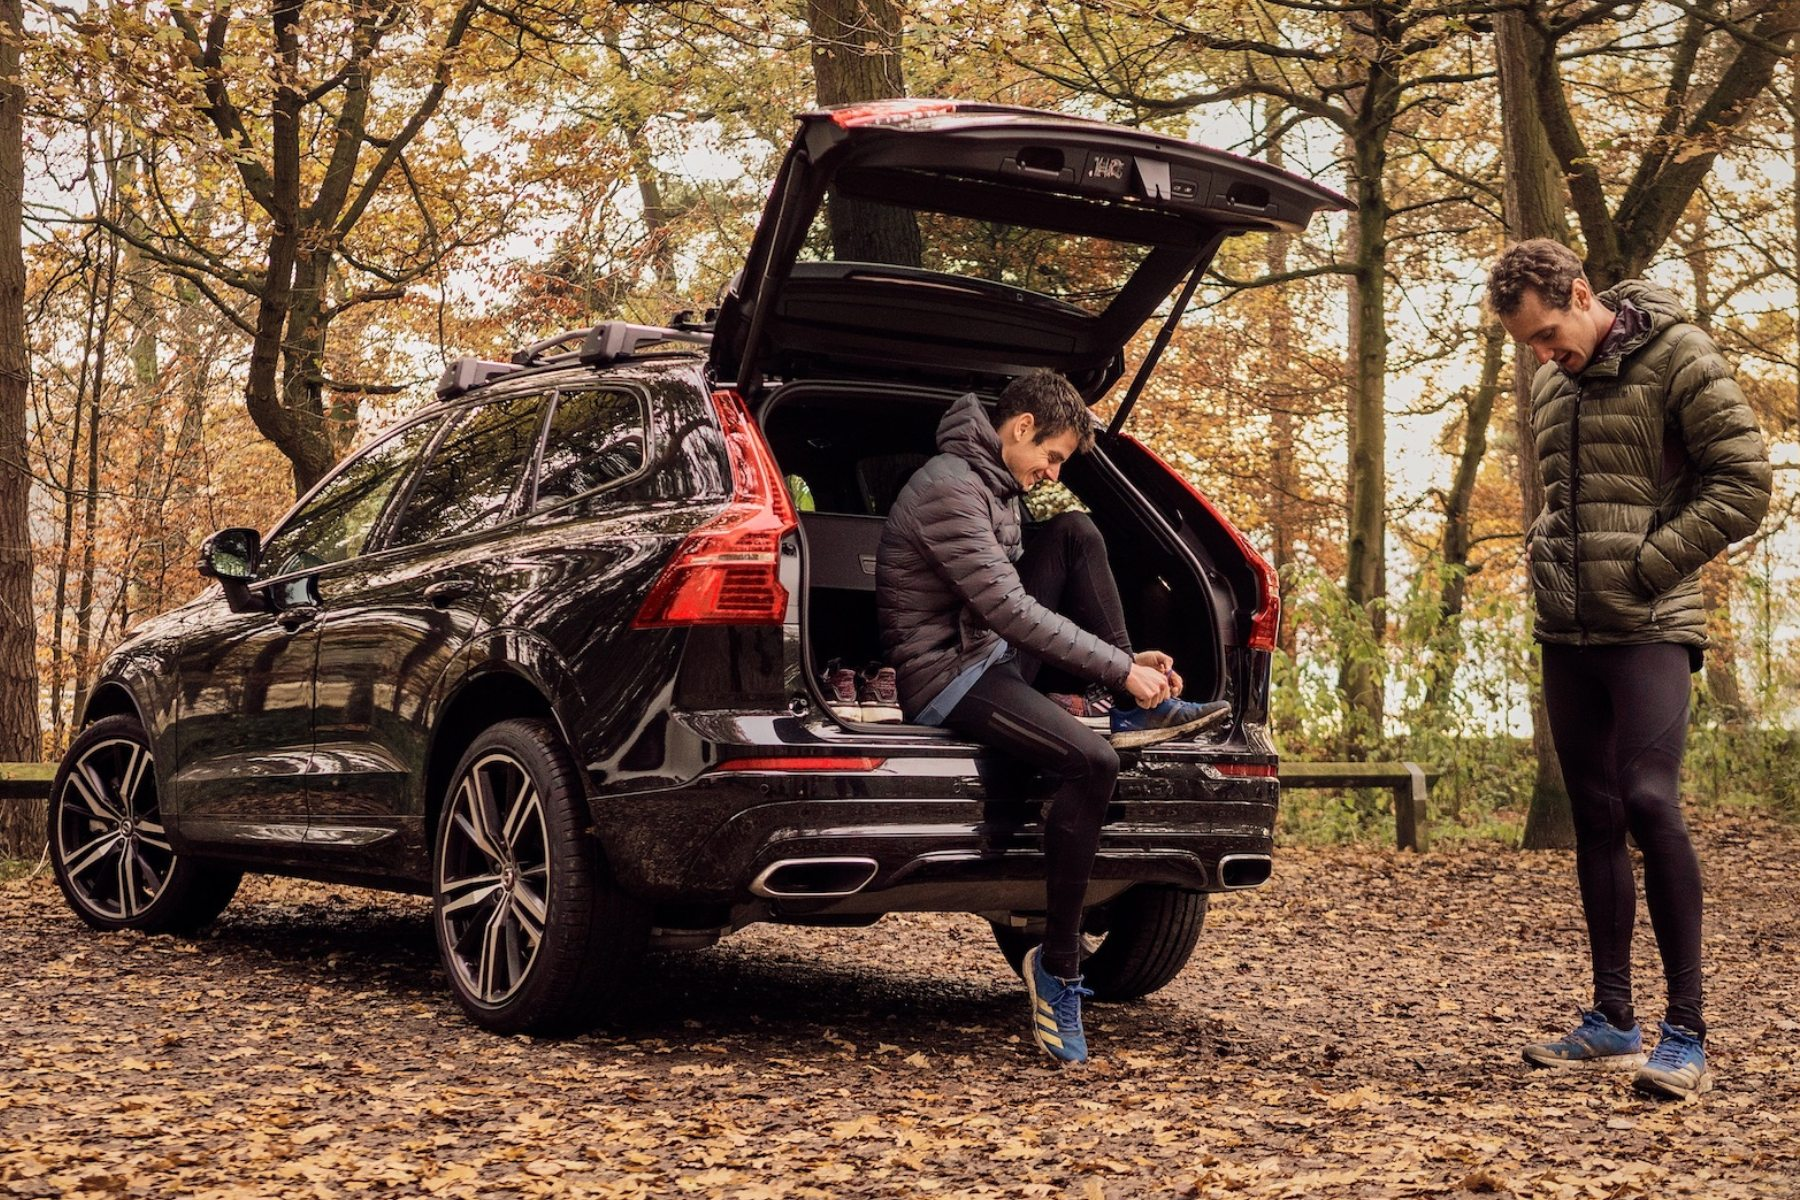 Triathletes Alistair and Jonny Brownlee join Volvo Car UK as brand ambassadors